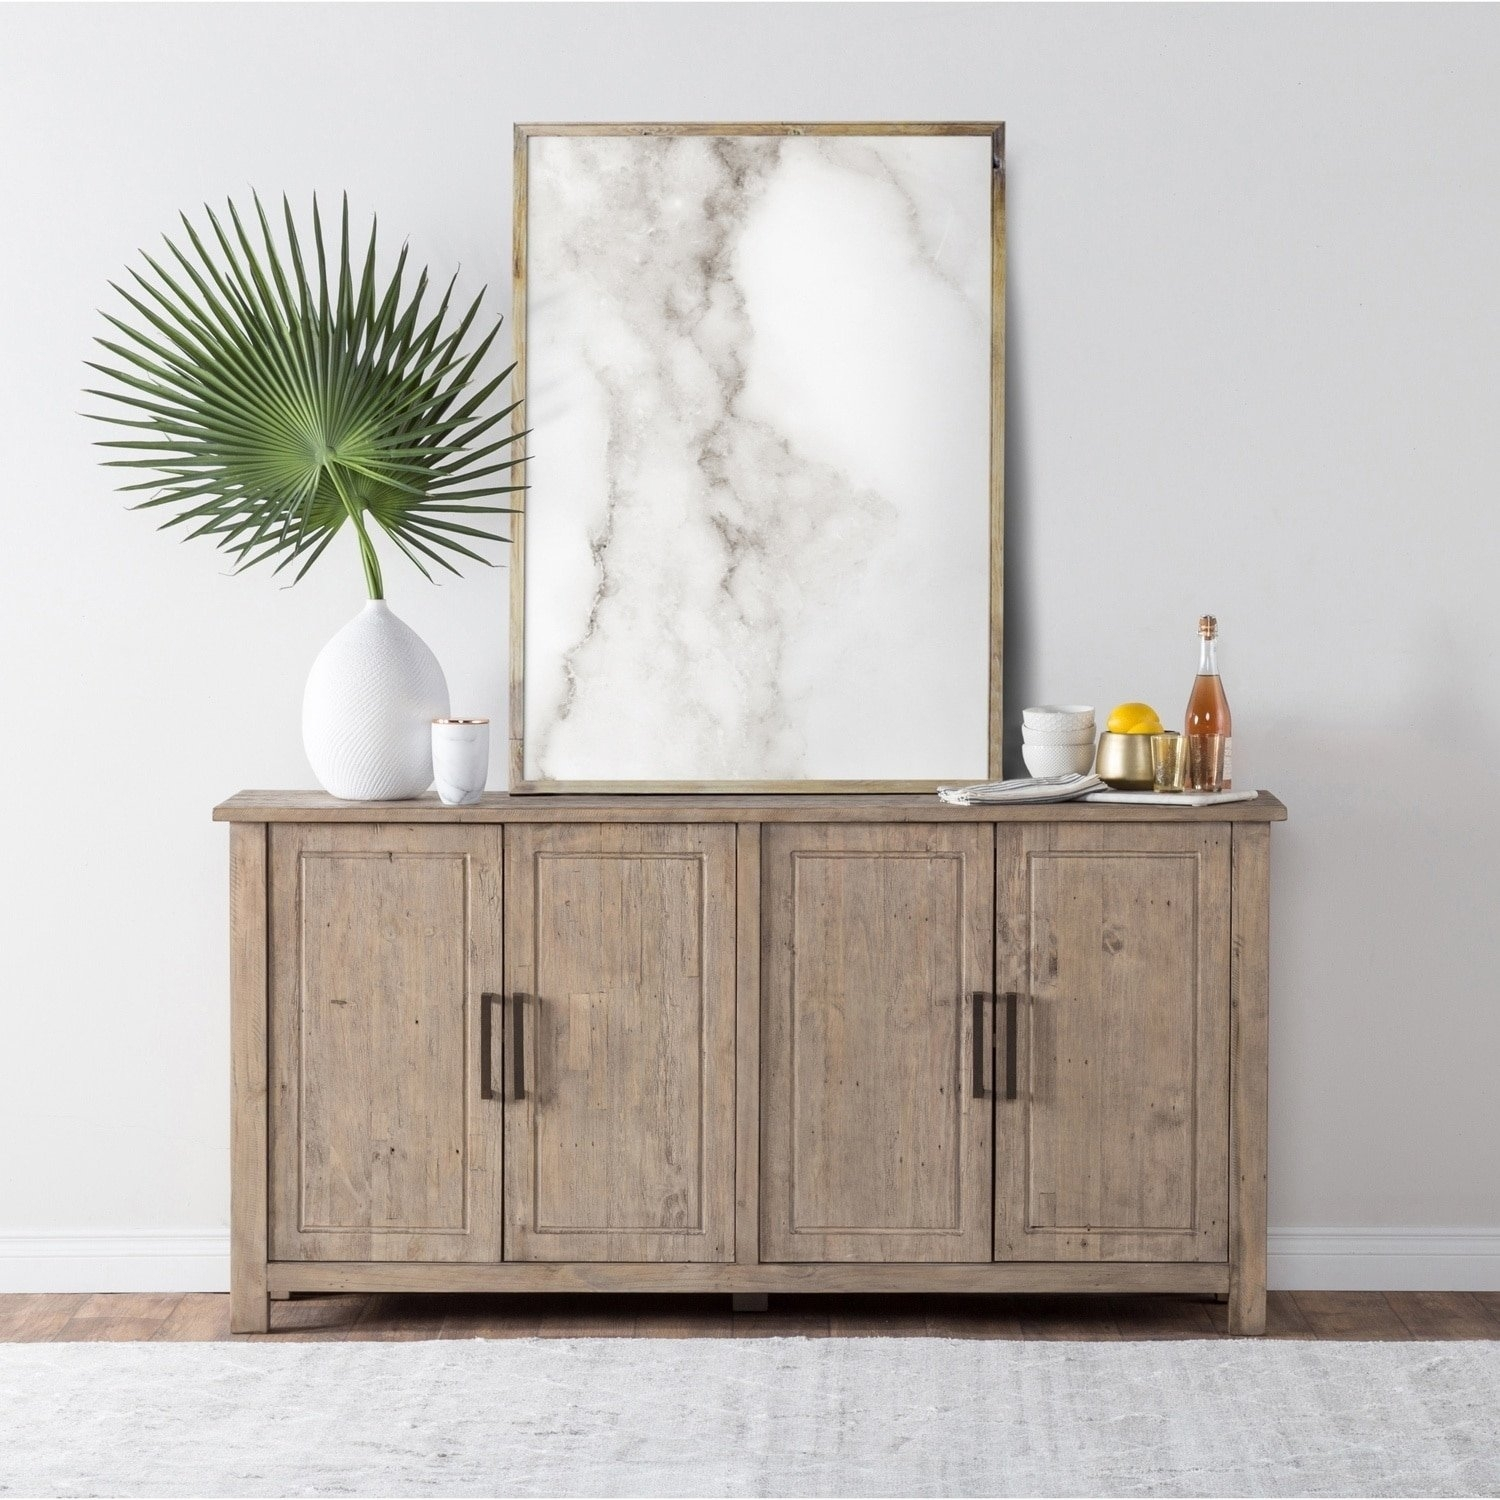 Shop Aires Reclaimed Wood 72-Inch Sideboardkosas Home - Free within Reclaimed Pine & Iron 72 Inch Sideboards (Image 19 of 30)